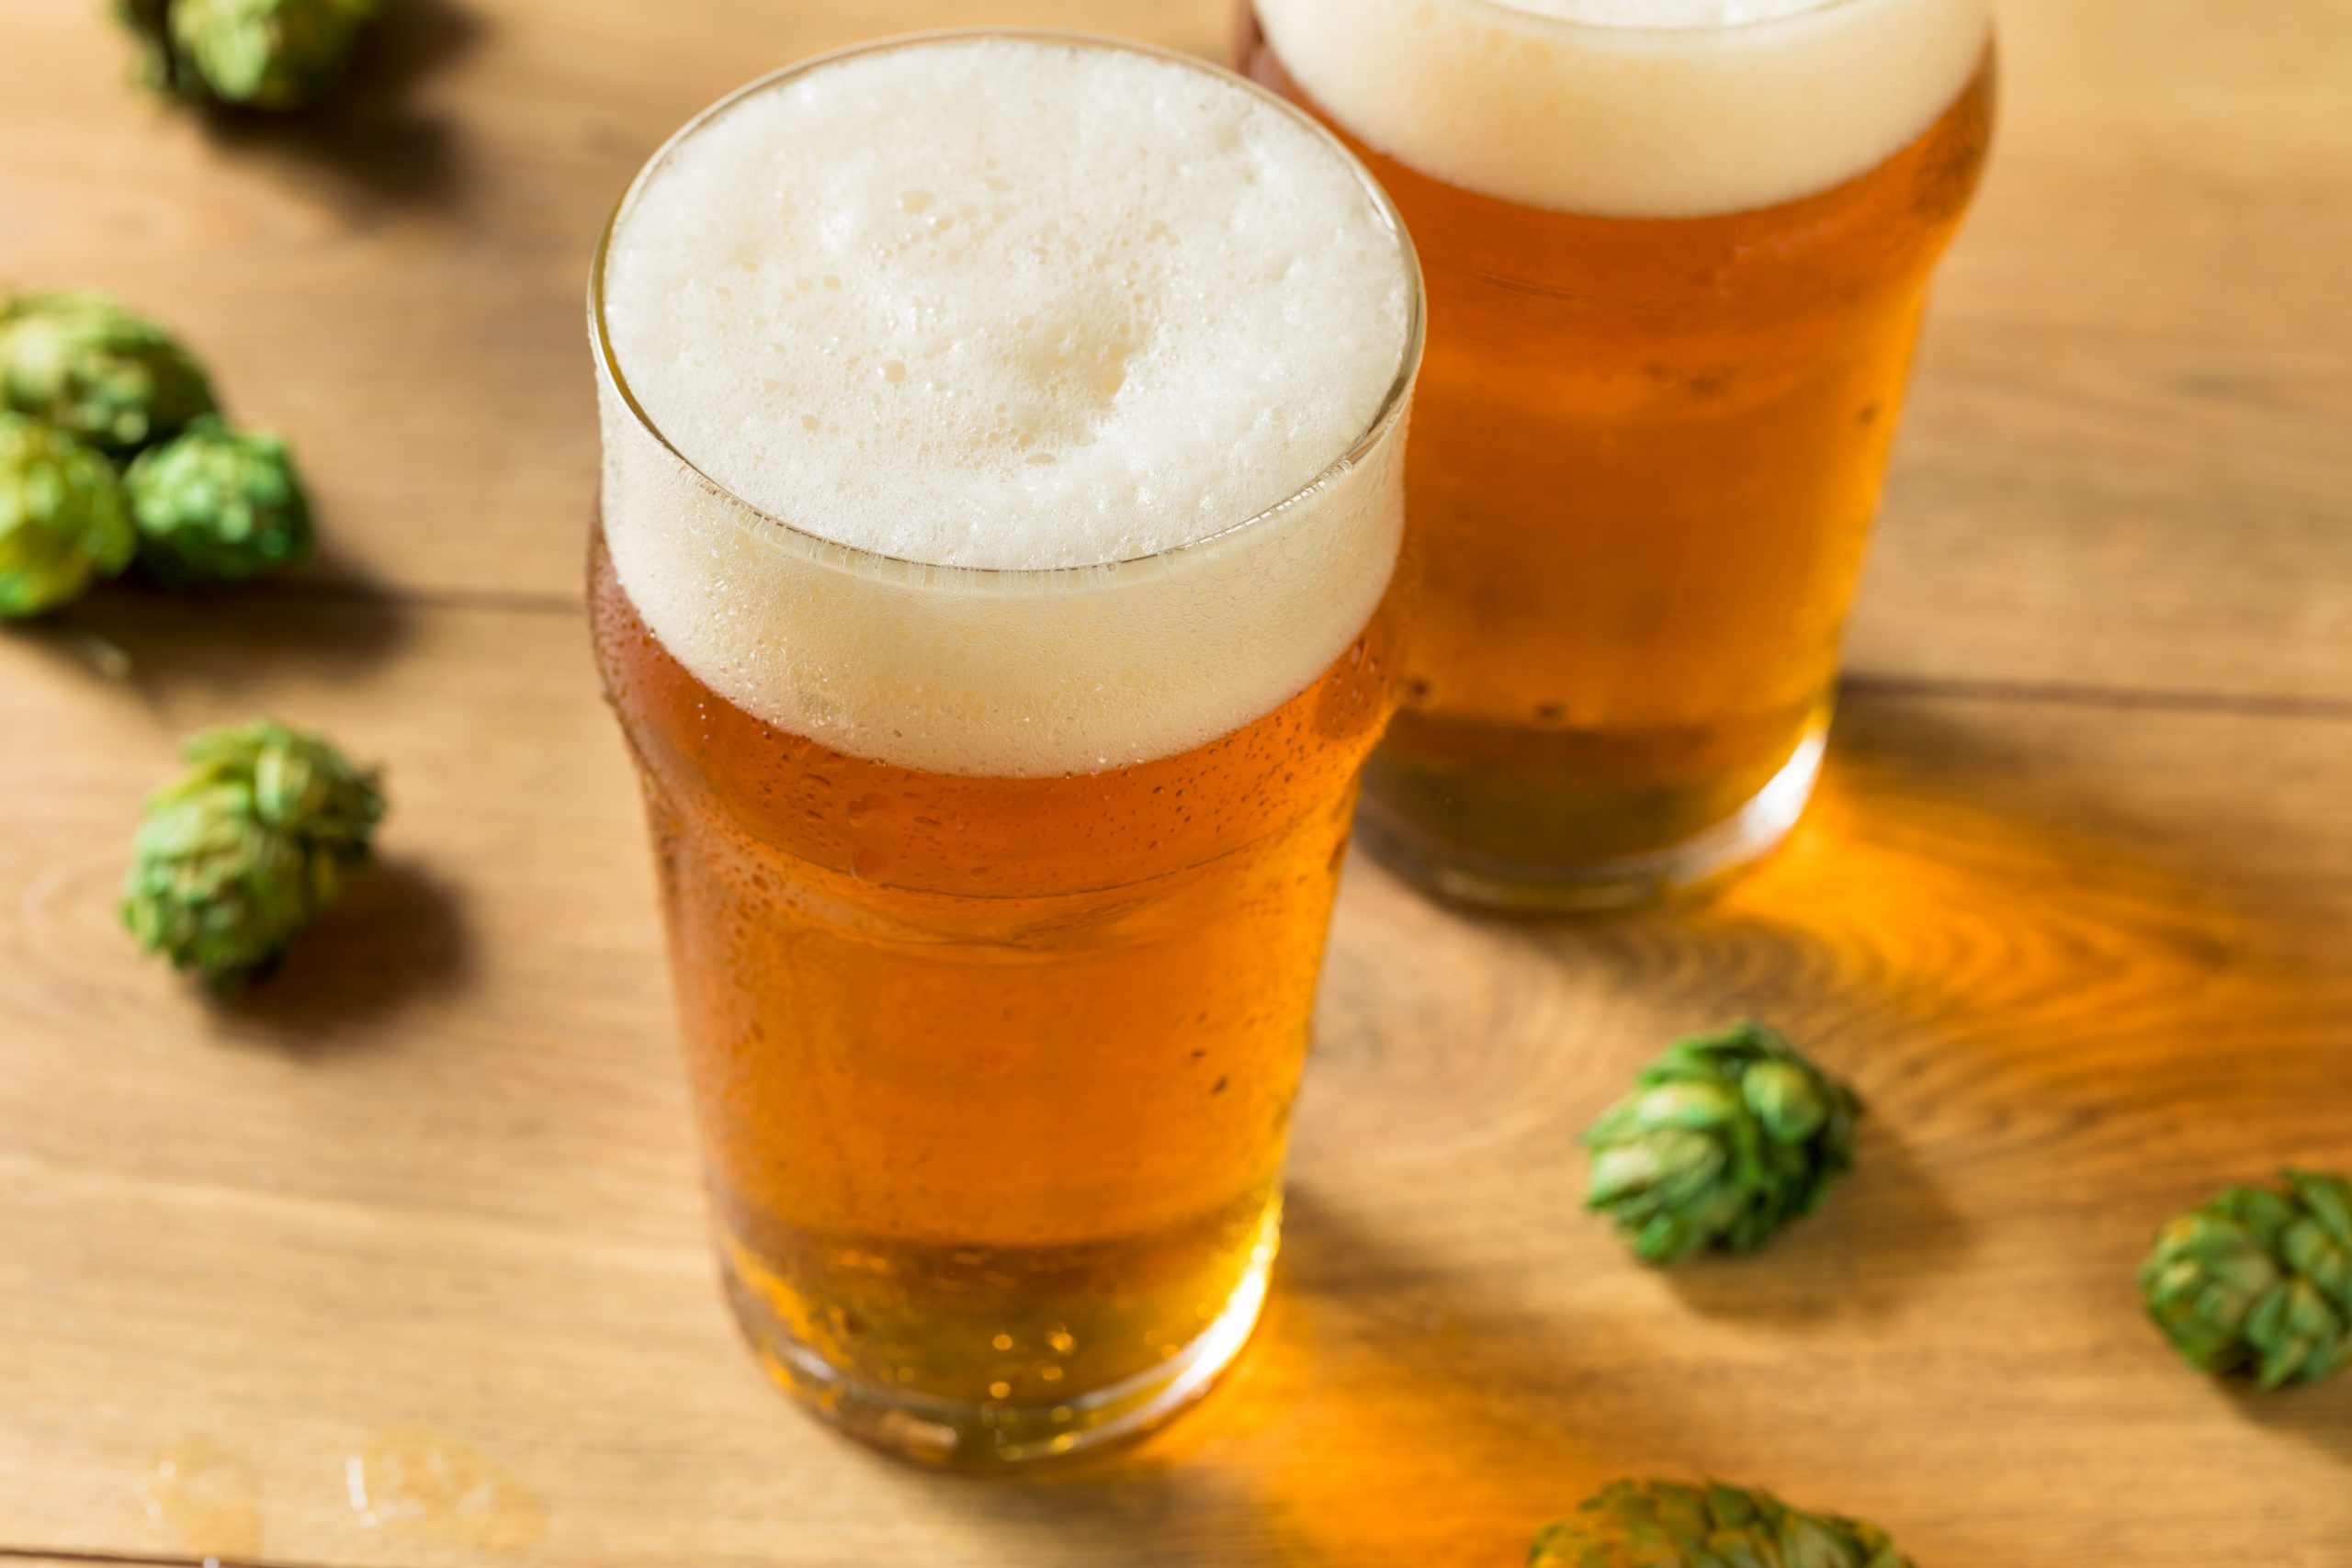 summer ipa craft beer with hops